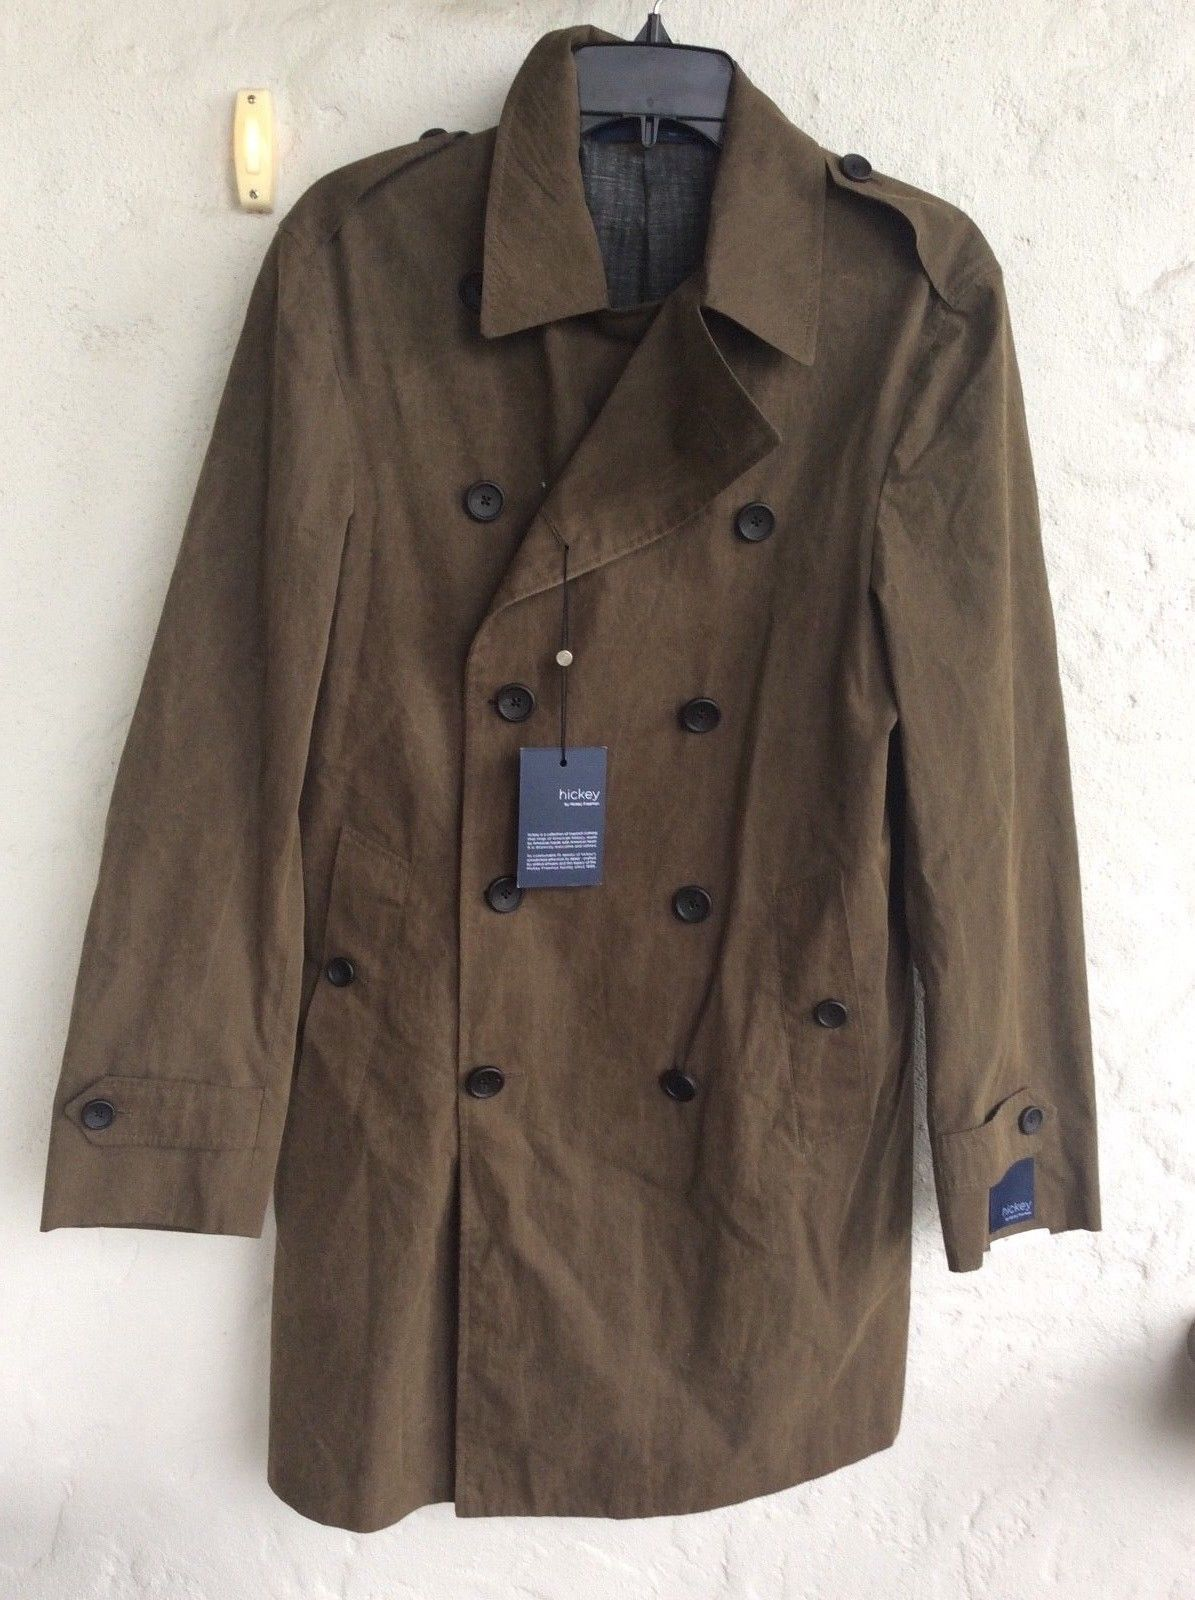 Primary image for $895.00 Hickey  Freeman Light Weight Lined Waxed Cotton top coat Olive Size 38 R